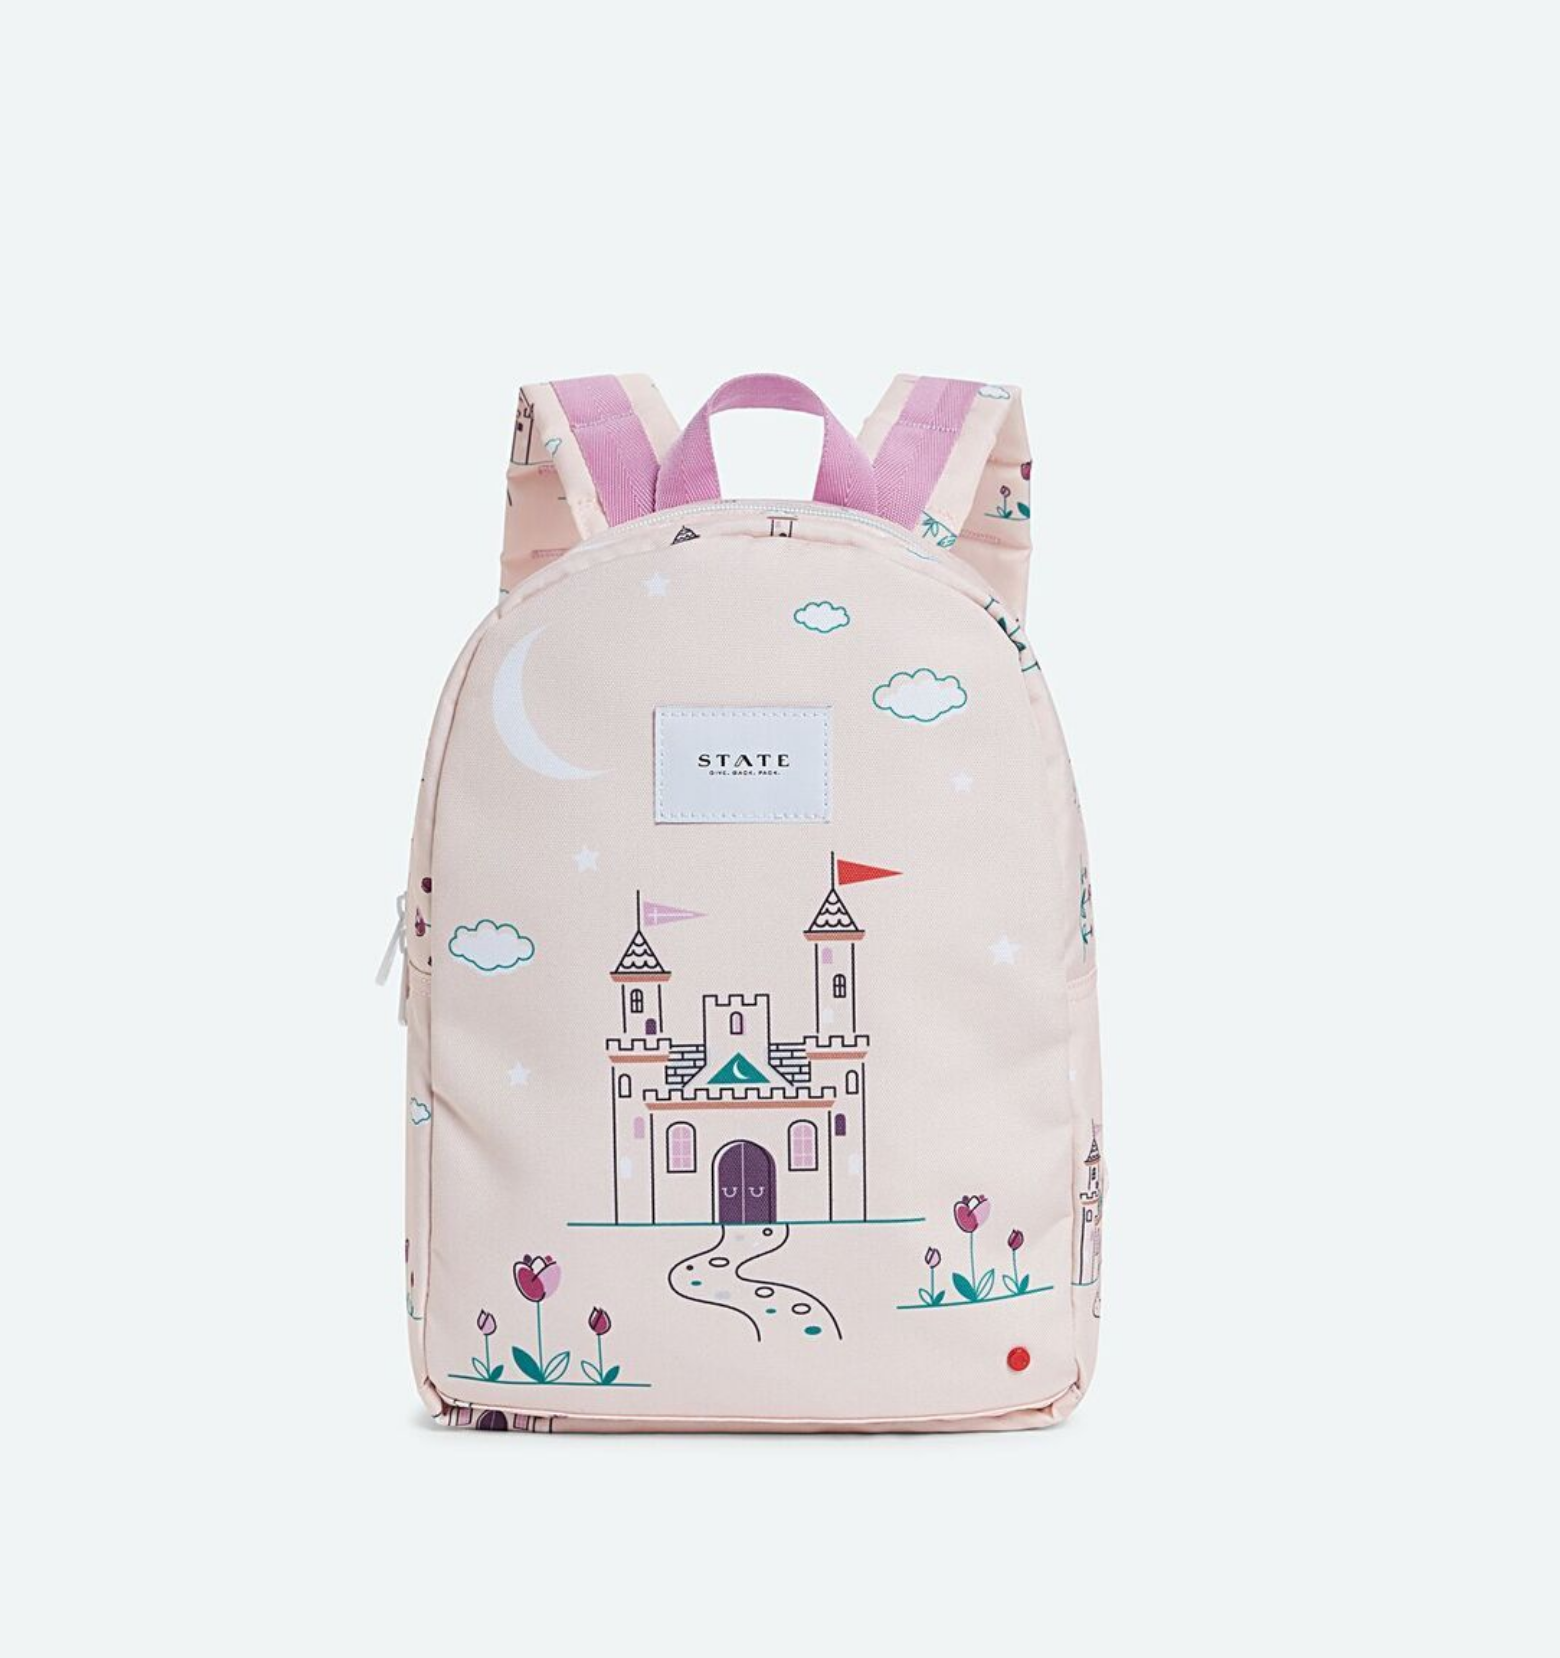 Fairytale_Bag01.png